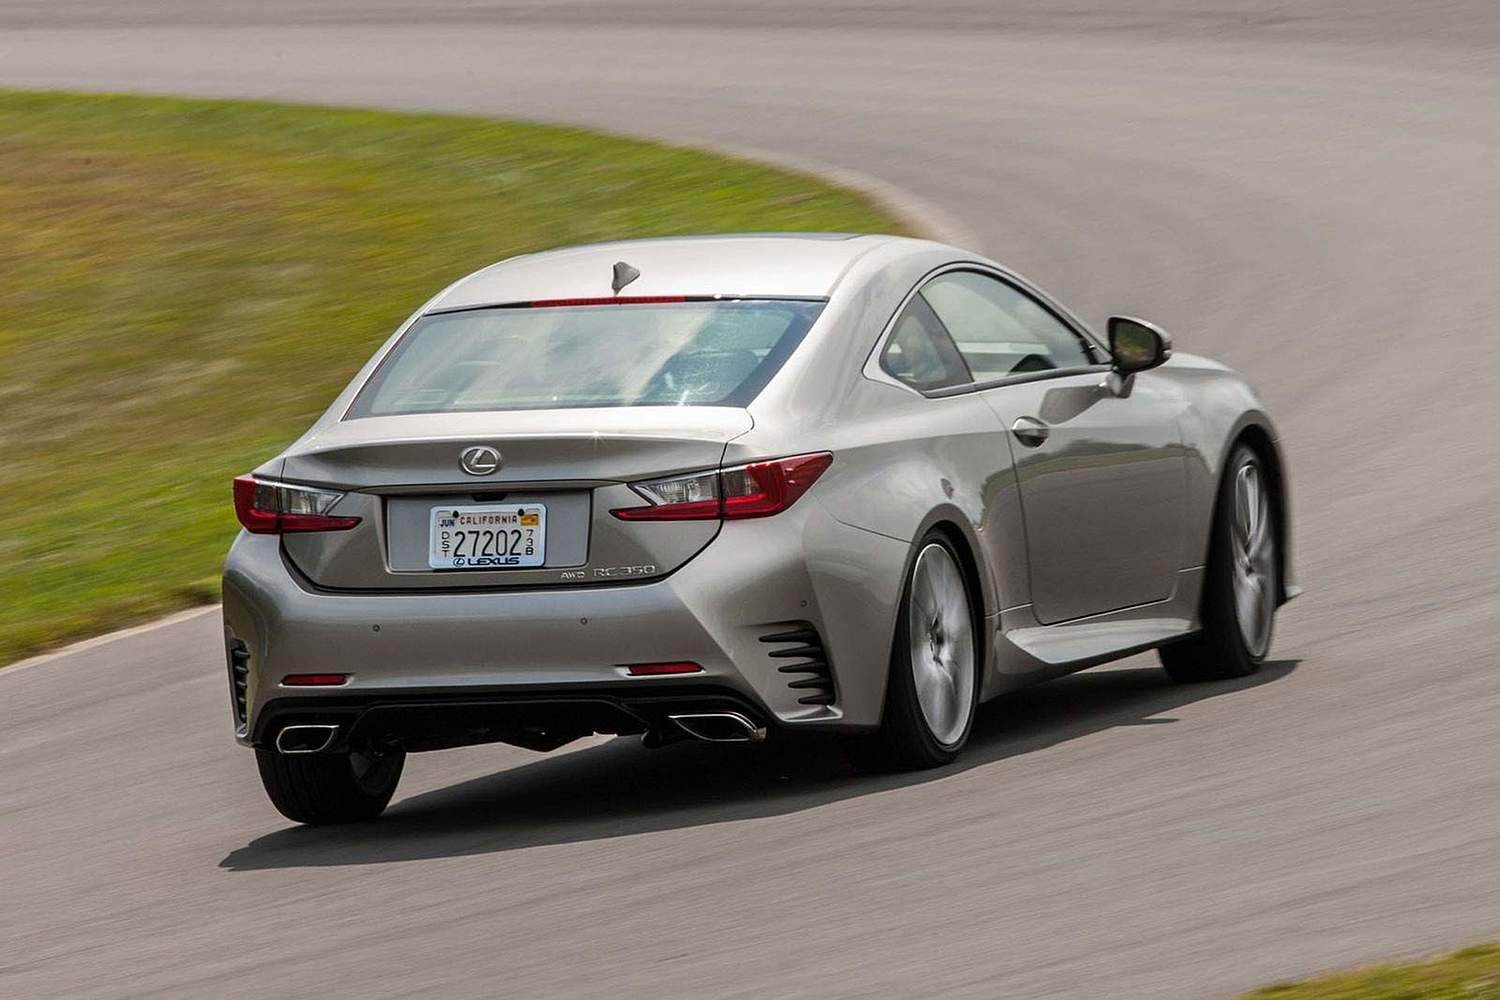 Lexus RC 350 Coupe Exterior (2017 model year shown)